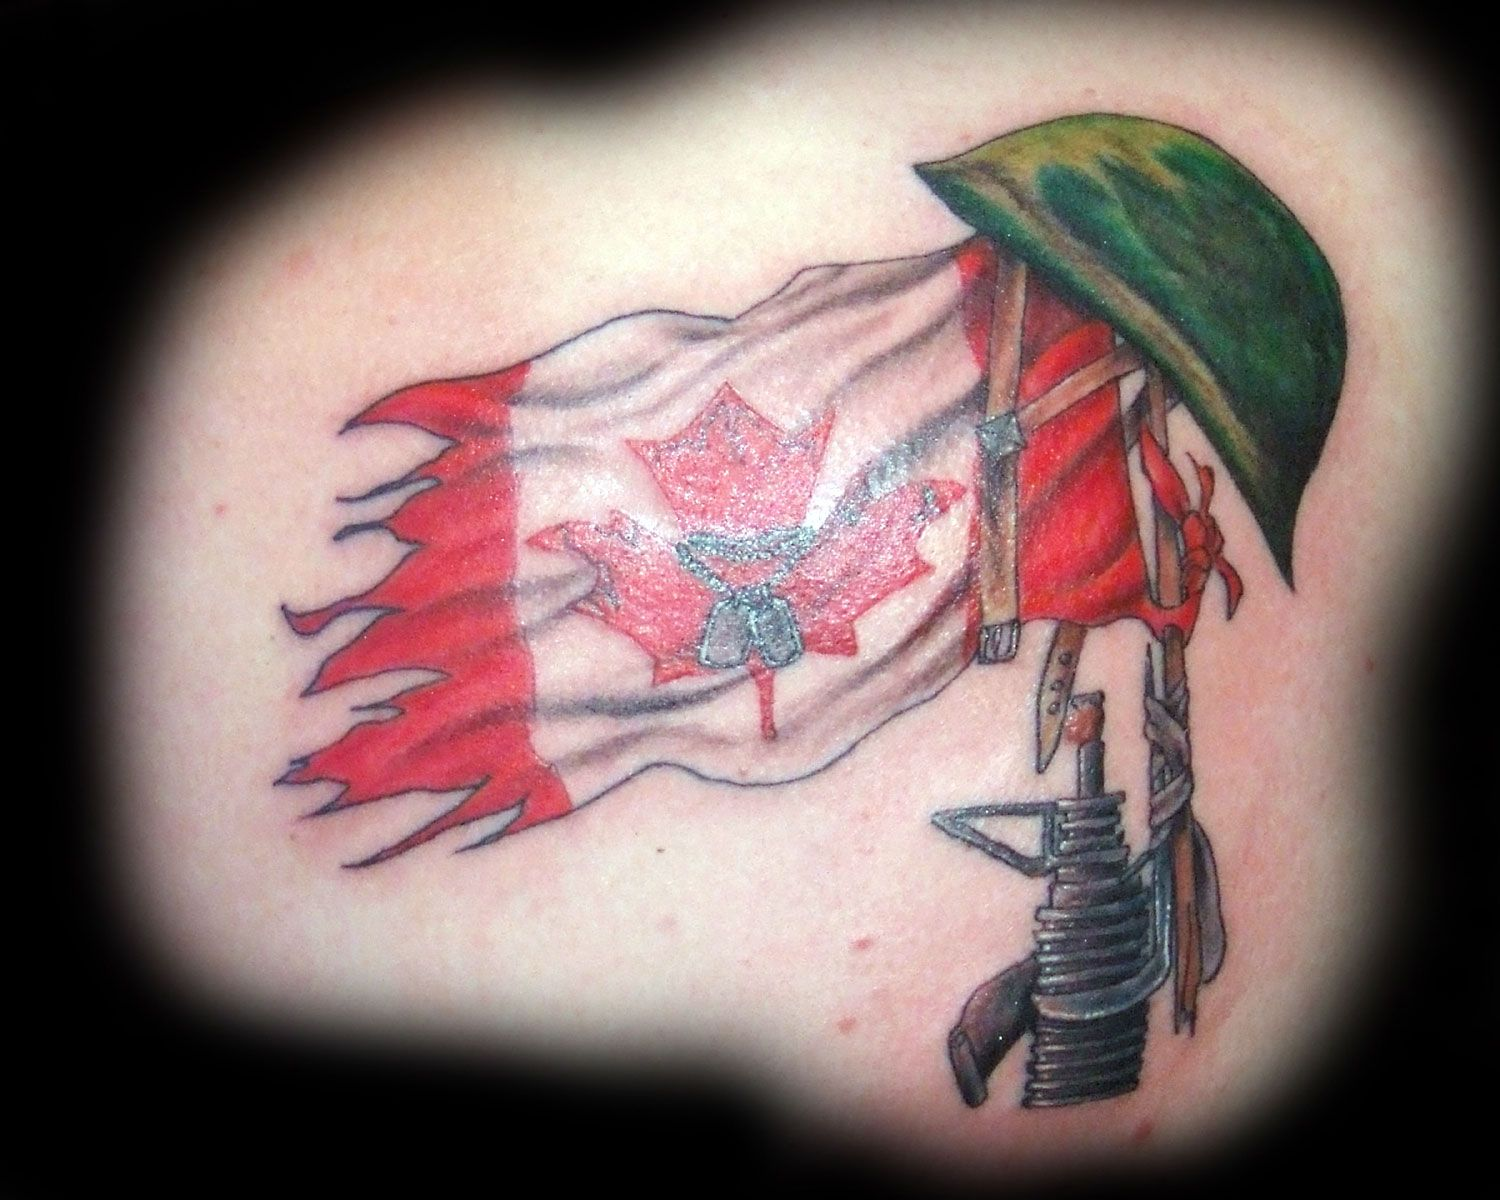 Name canadian flag ripping through skin tattoo designjpg pictures - Canadian Flag Tattoos Designs